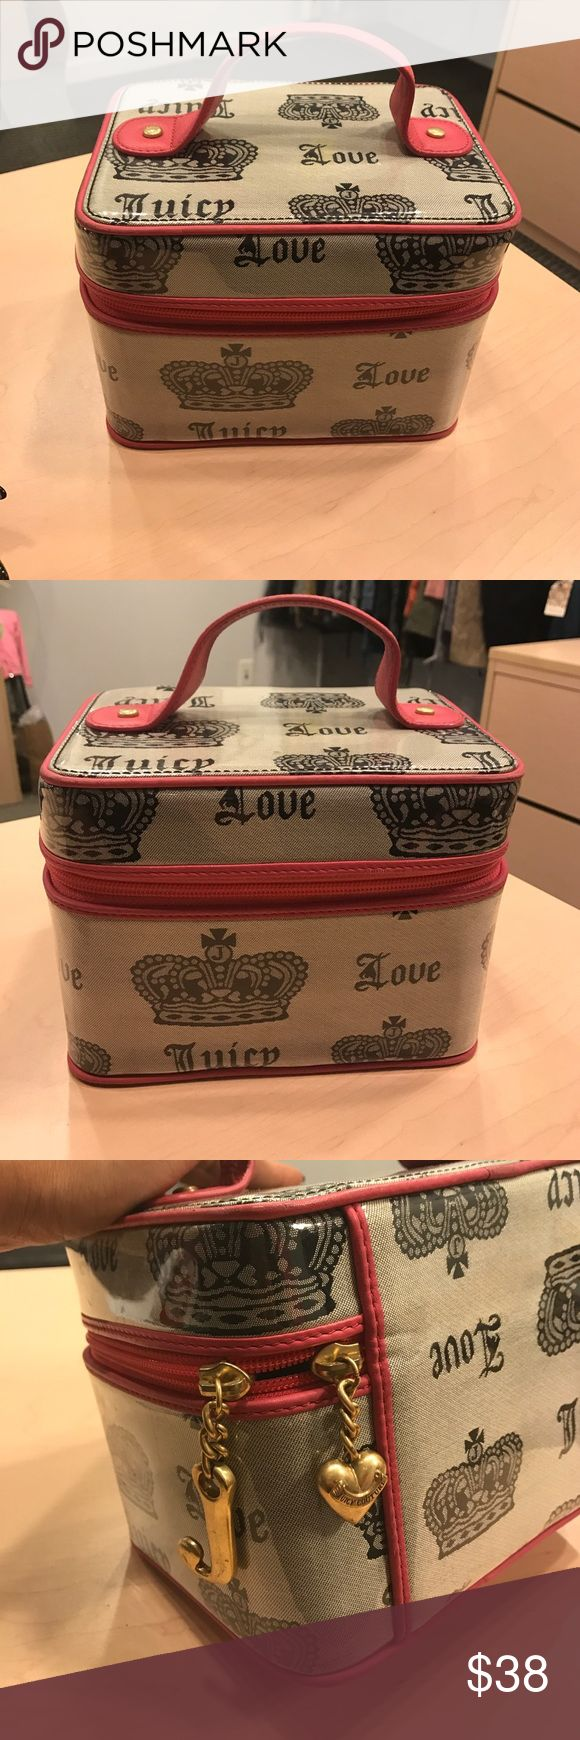 JUICY COUTURE MAKE UP CASE This is a juicy couture make up case. It has been used but shows on out side very little. Juicy Couture Bags Travel Bags